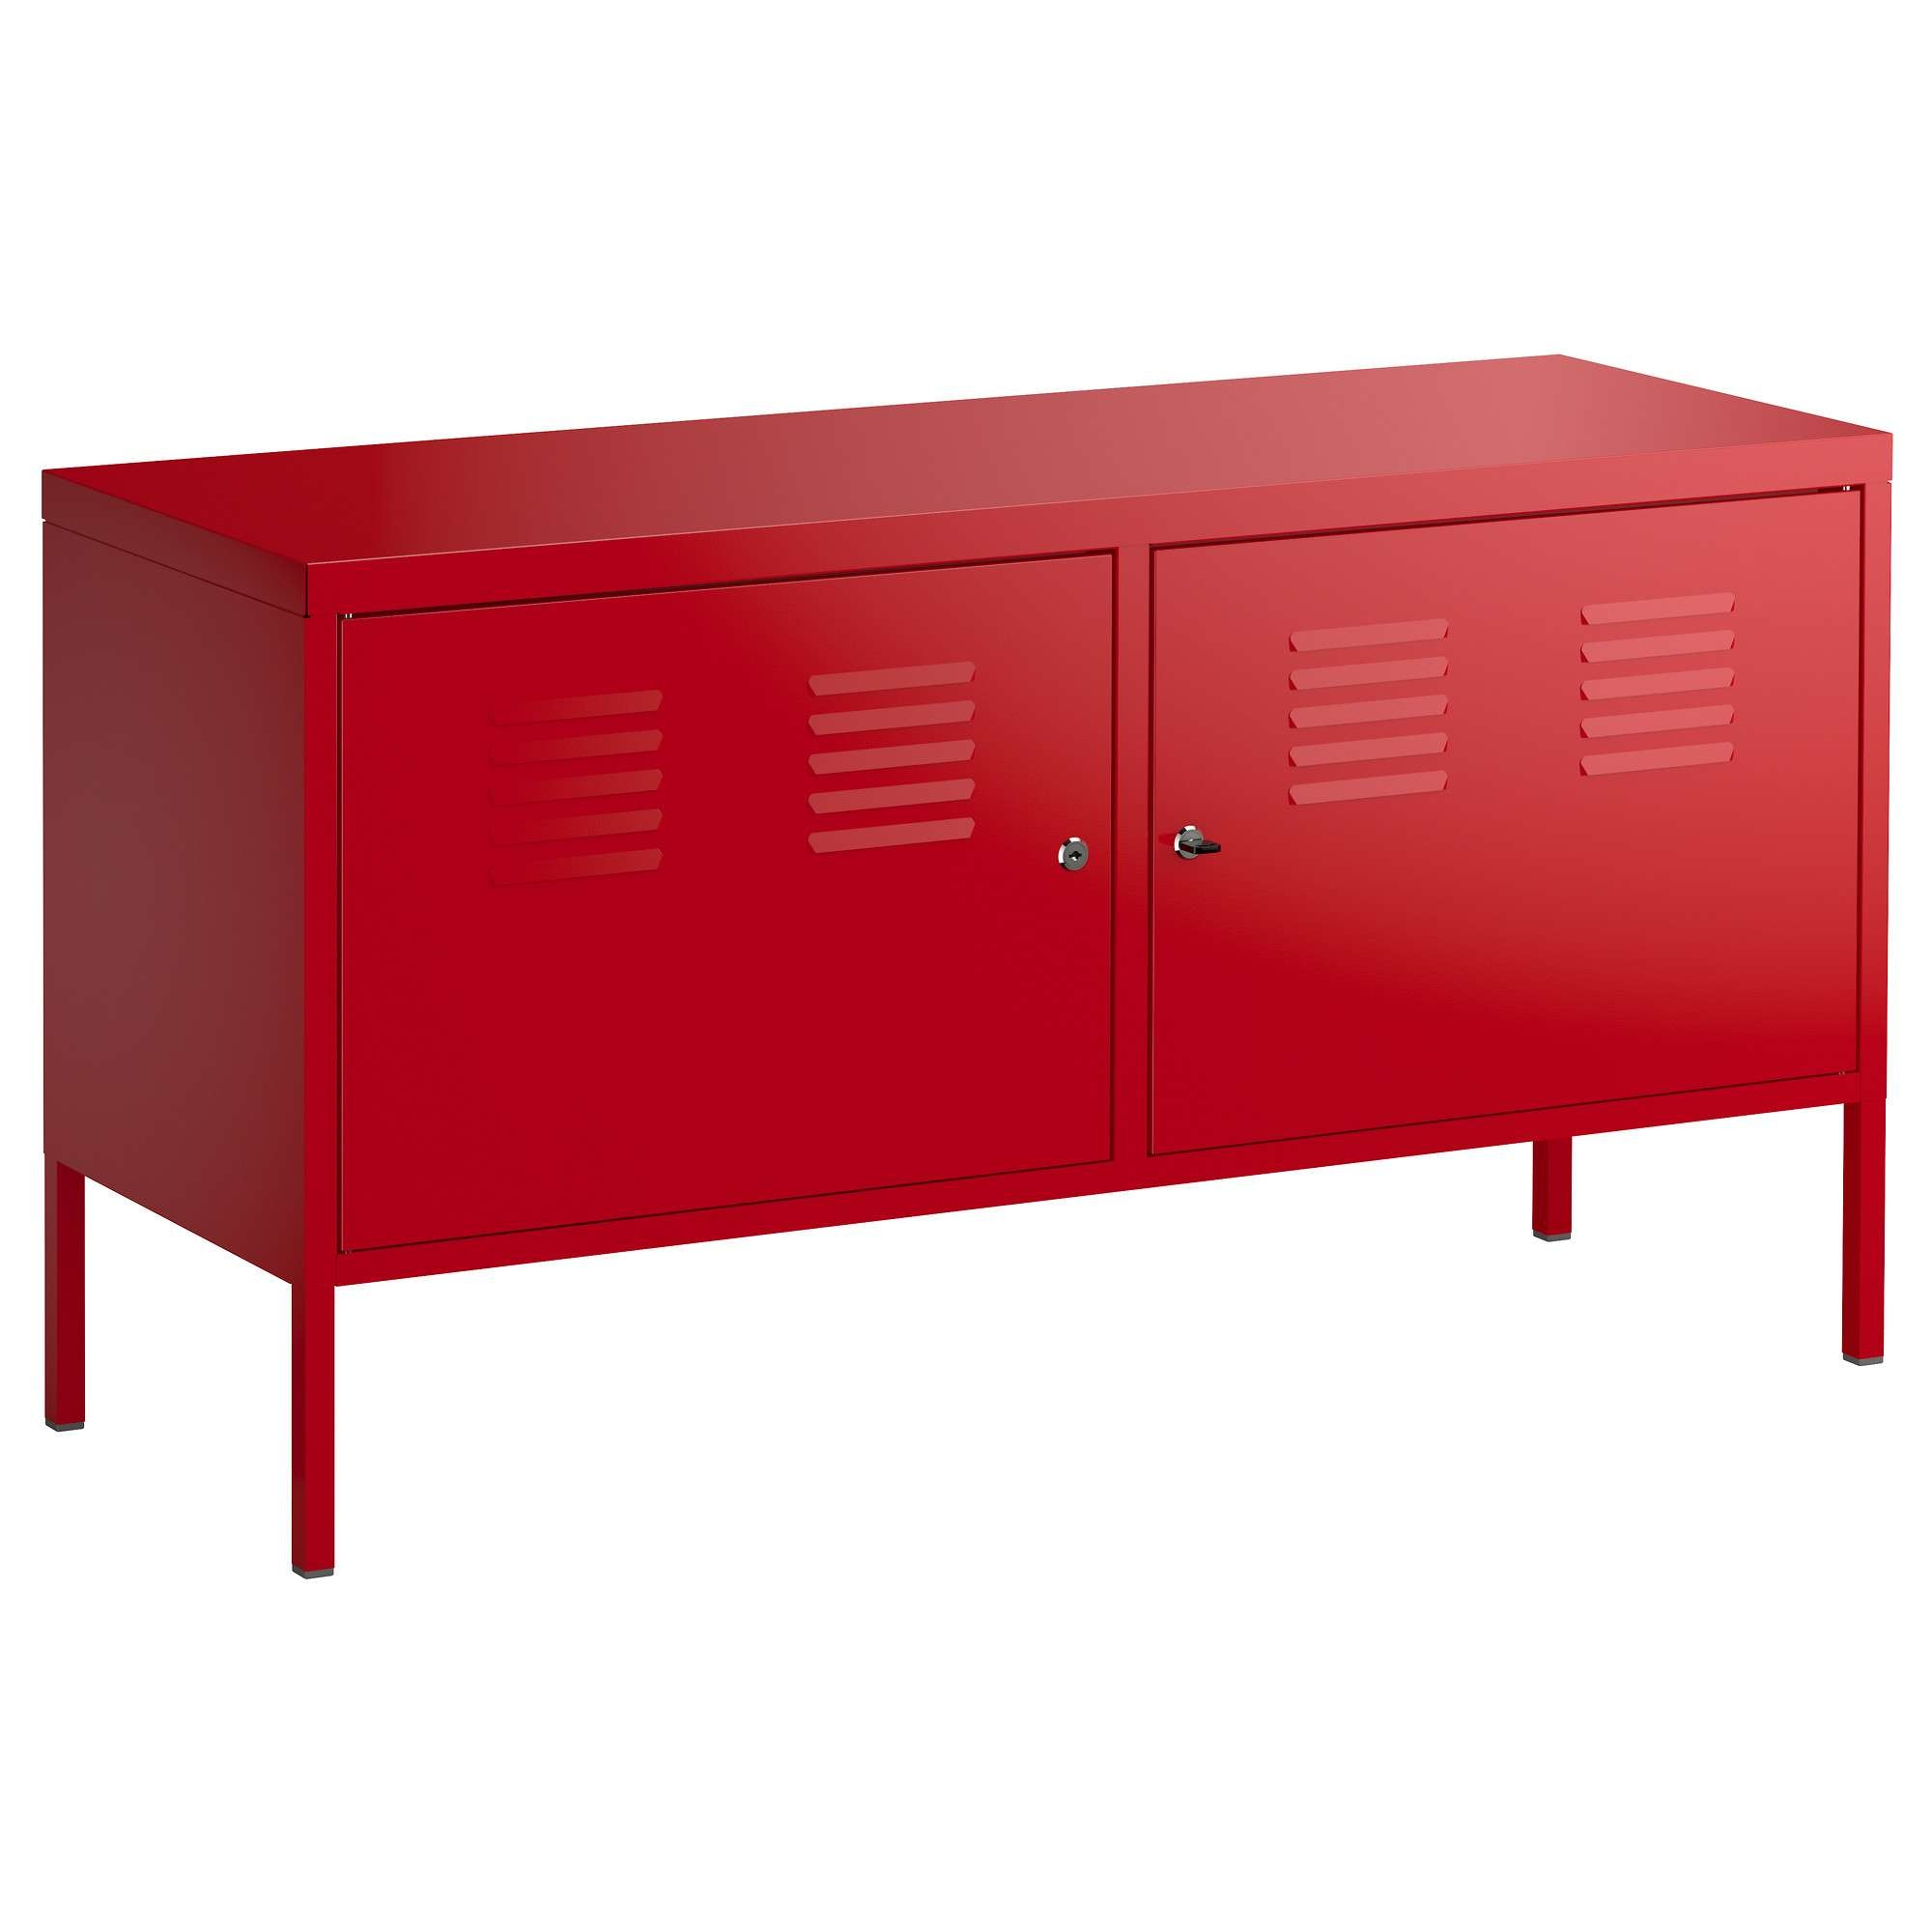 Ikea Ps Cabinet – Red – Ikea For 7 Foot Sideboards (Gallery 20 of 20)